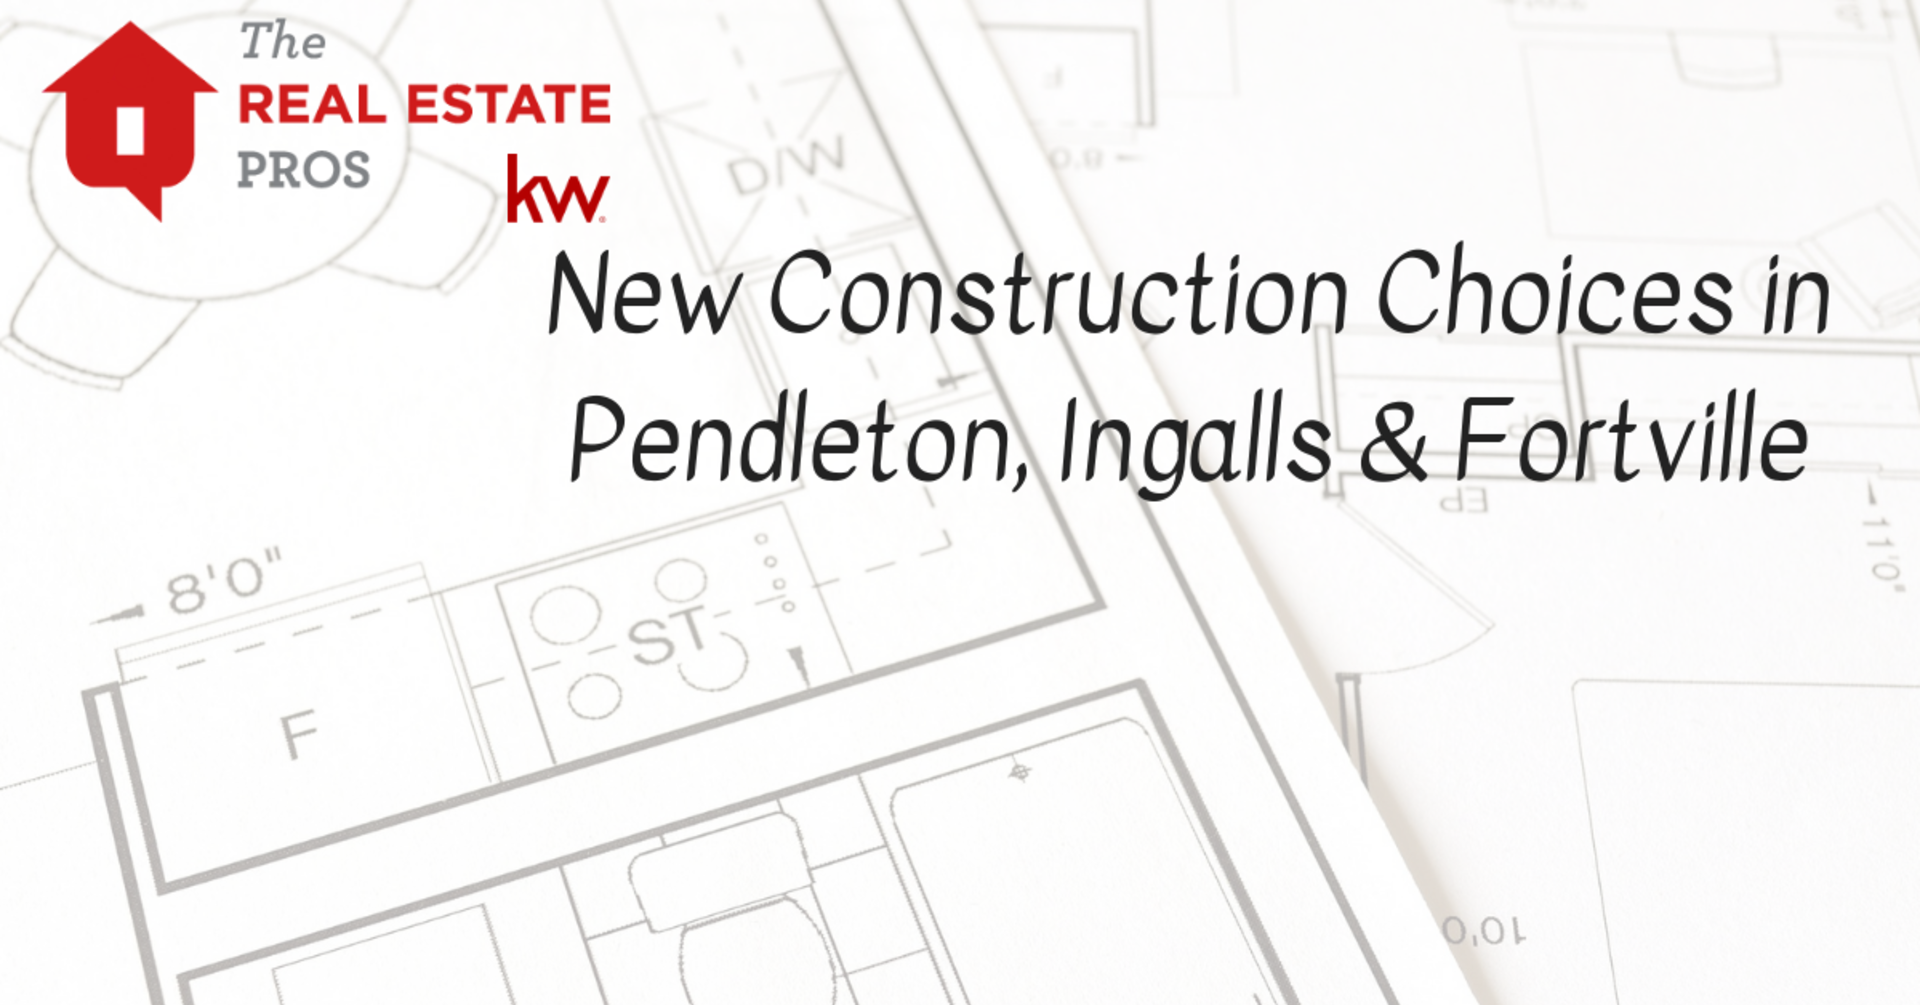 New Construction Choices in Pendleton, Ingalls & Fortville